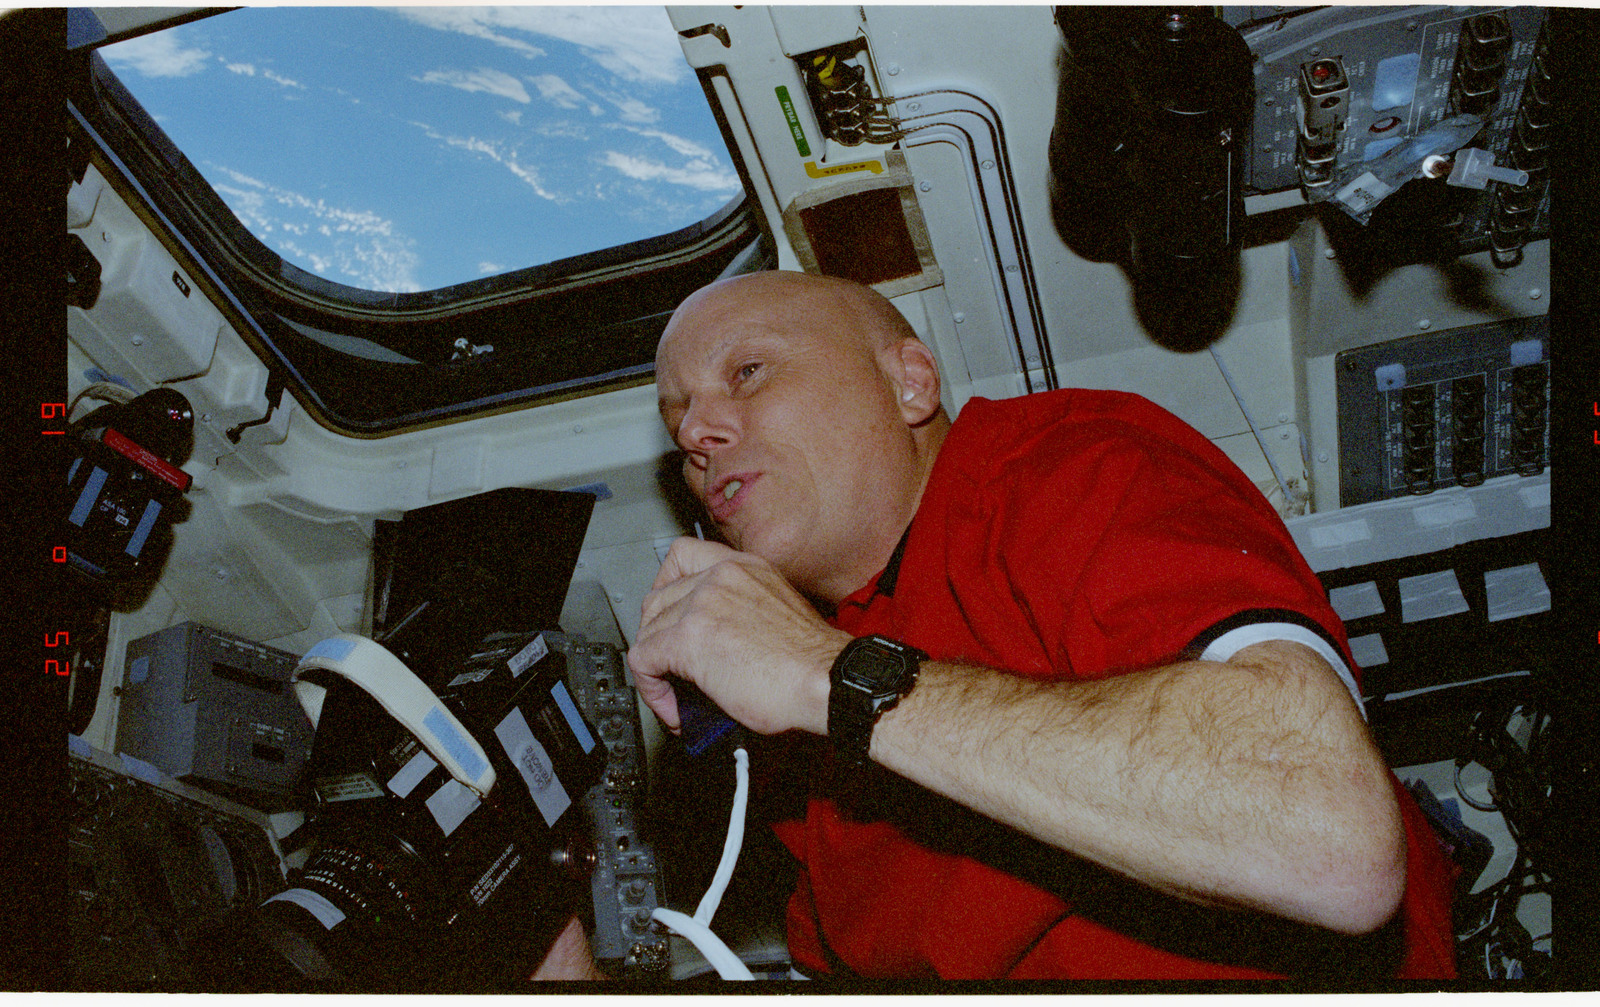 STS080-325-027 - STS-080 - Crewmember activities in the shuttle flight deck